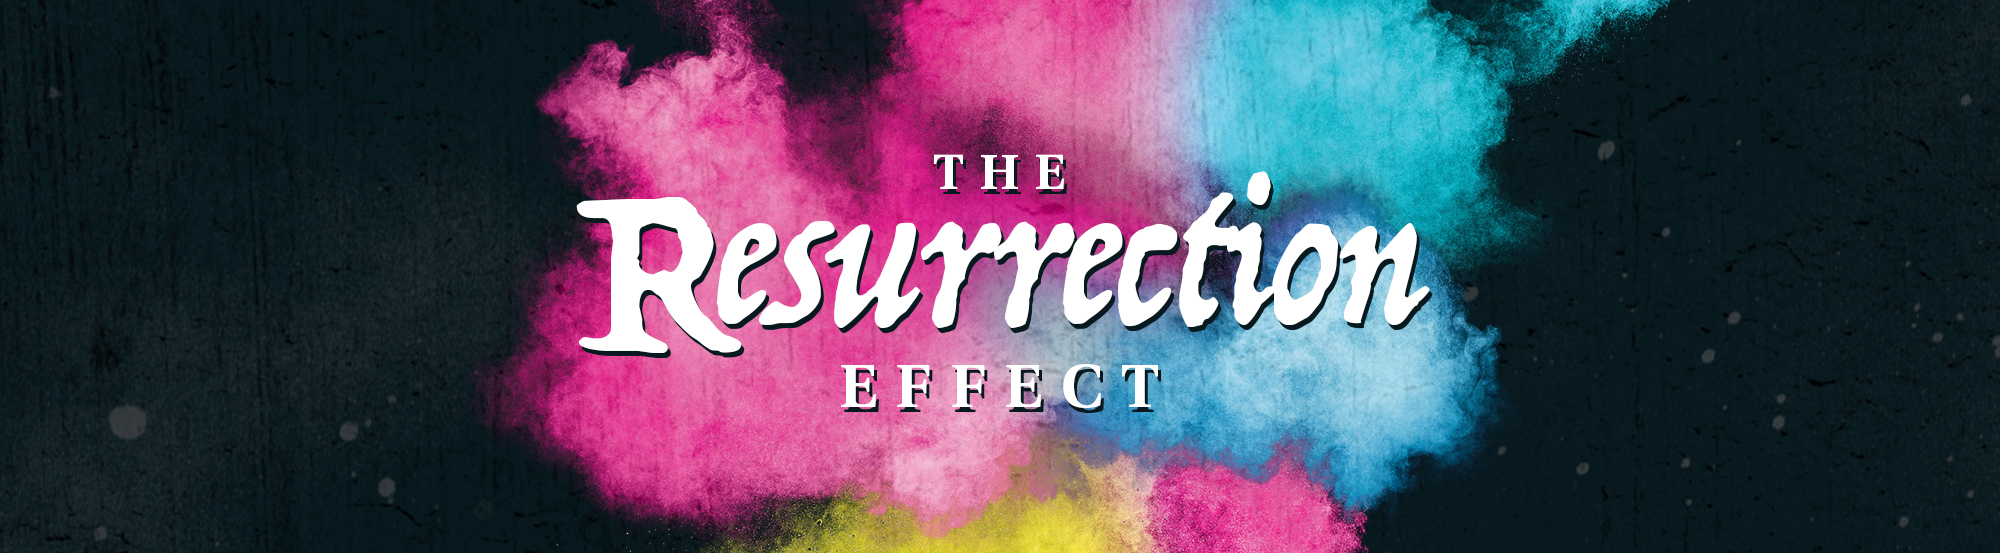 The Resurrection Effect main